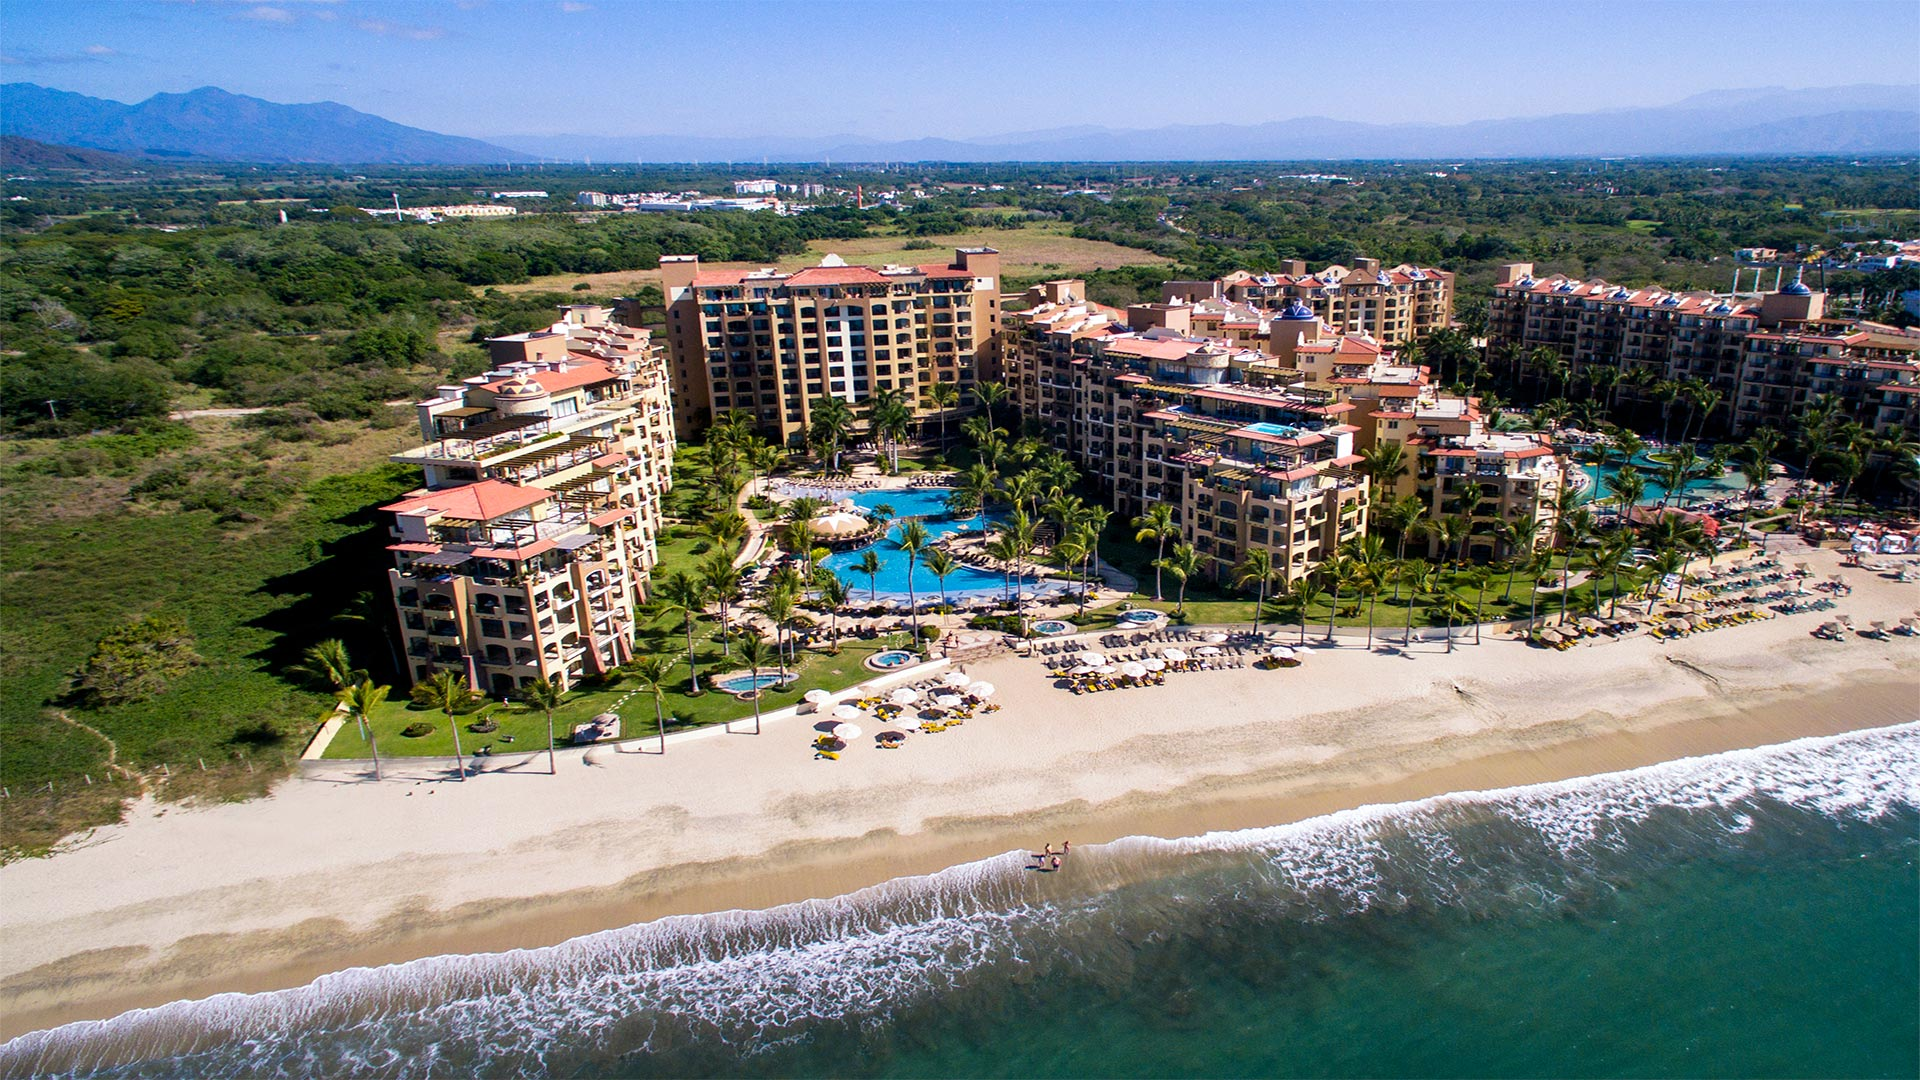 Optimizada villa la estancia riviera nayarit aerial 1